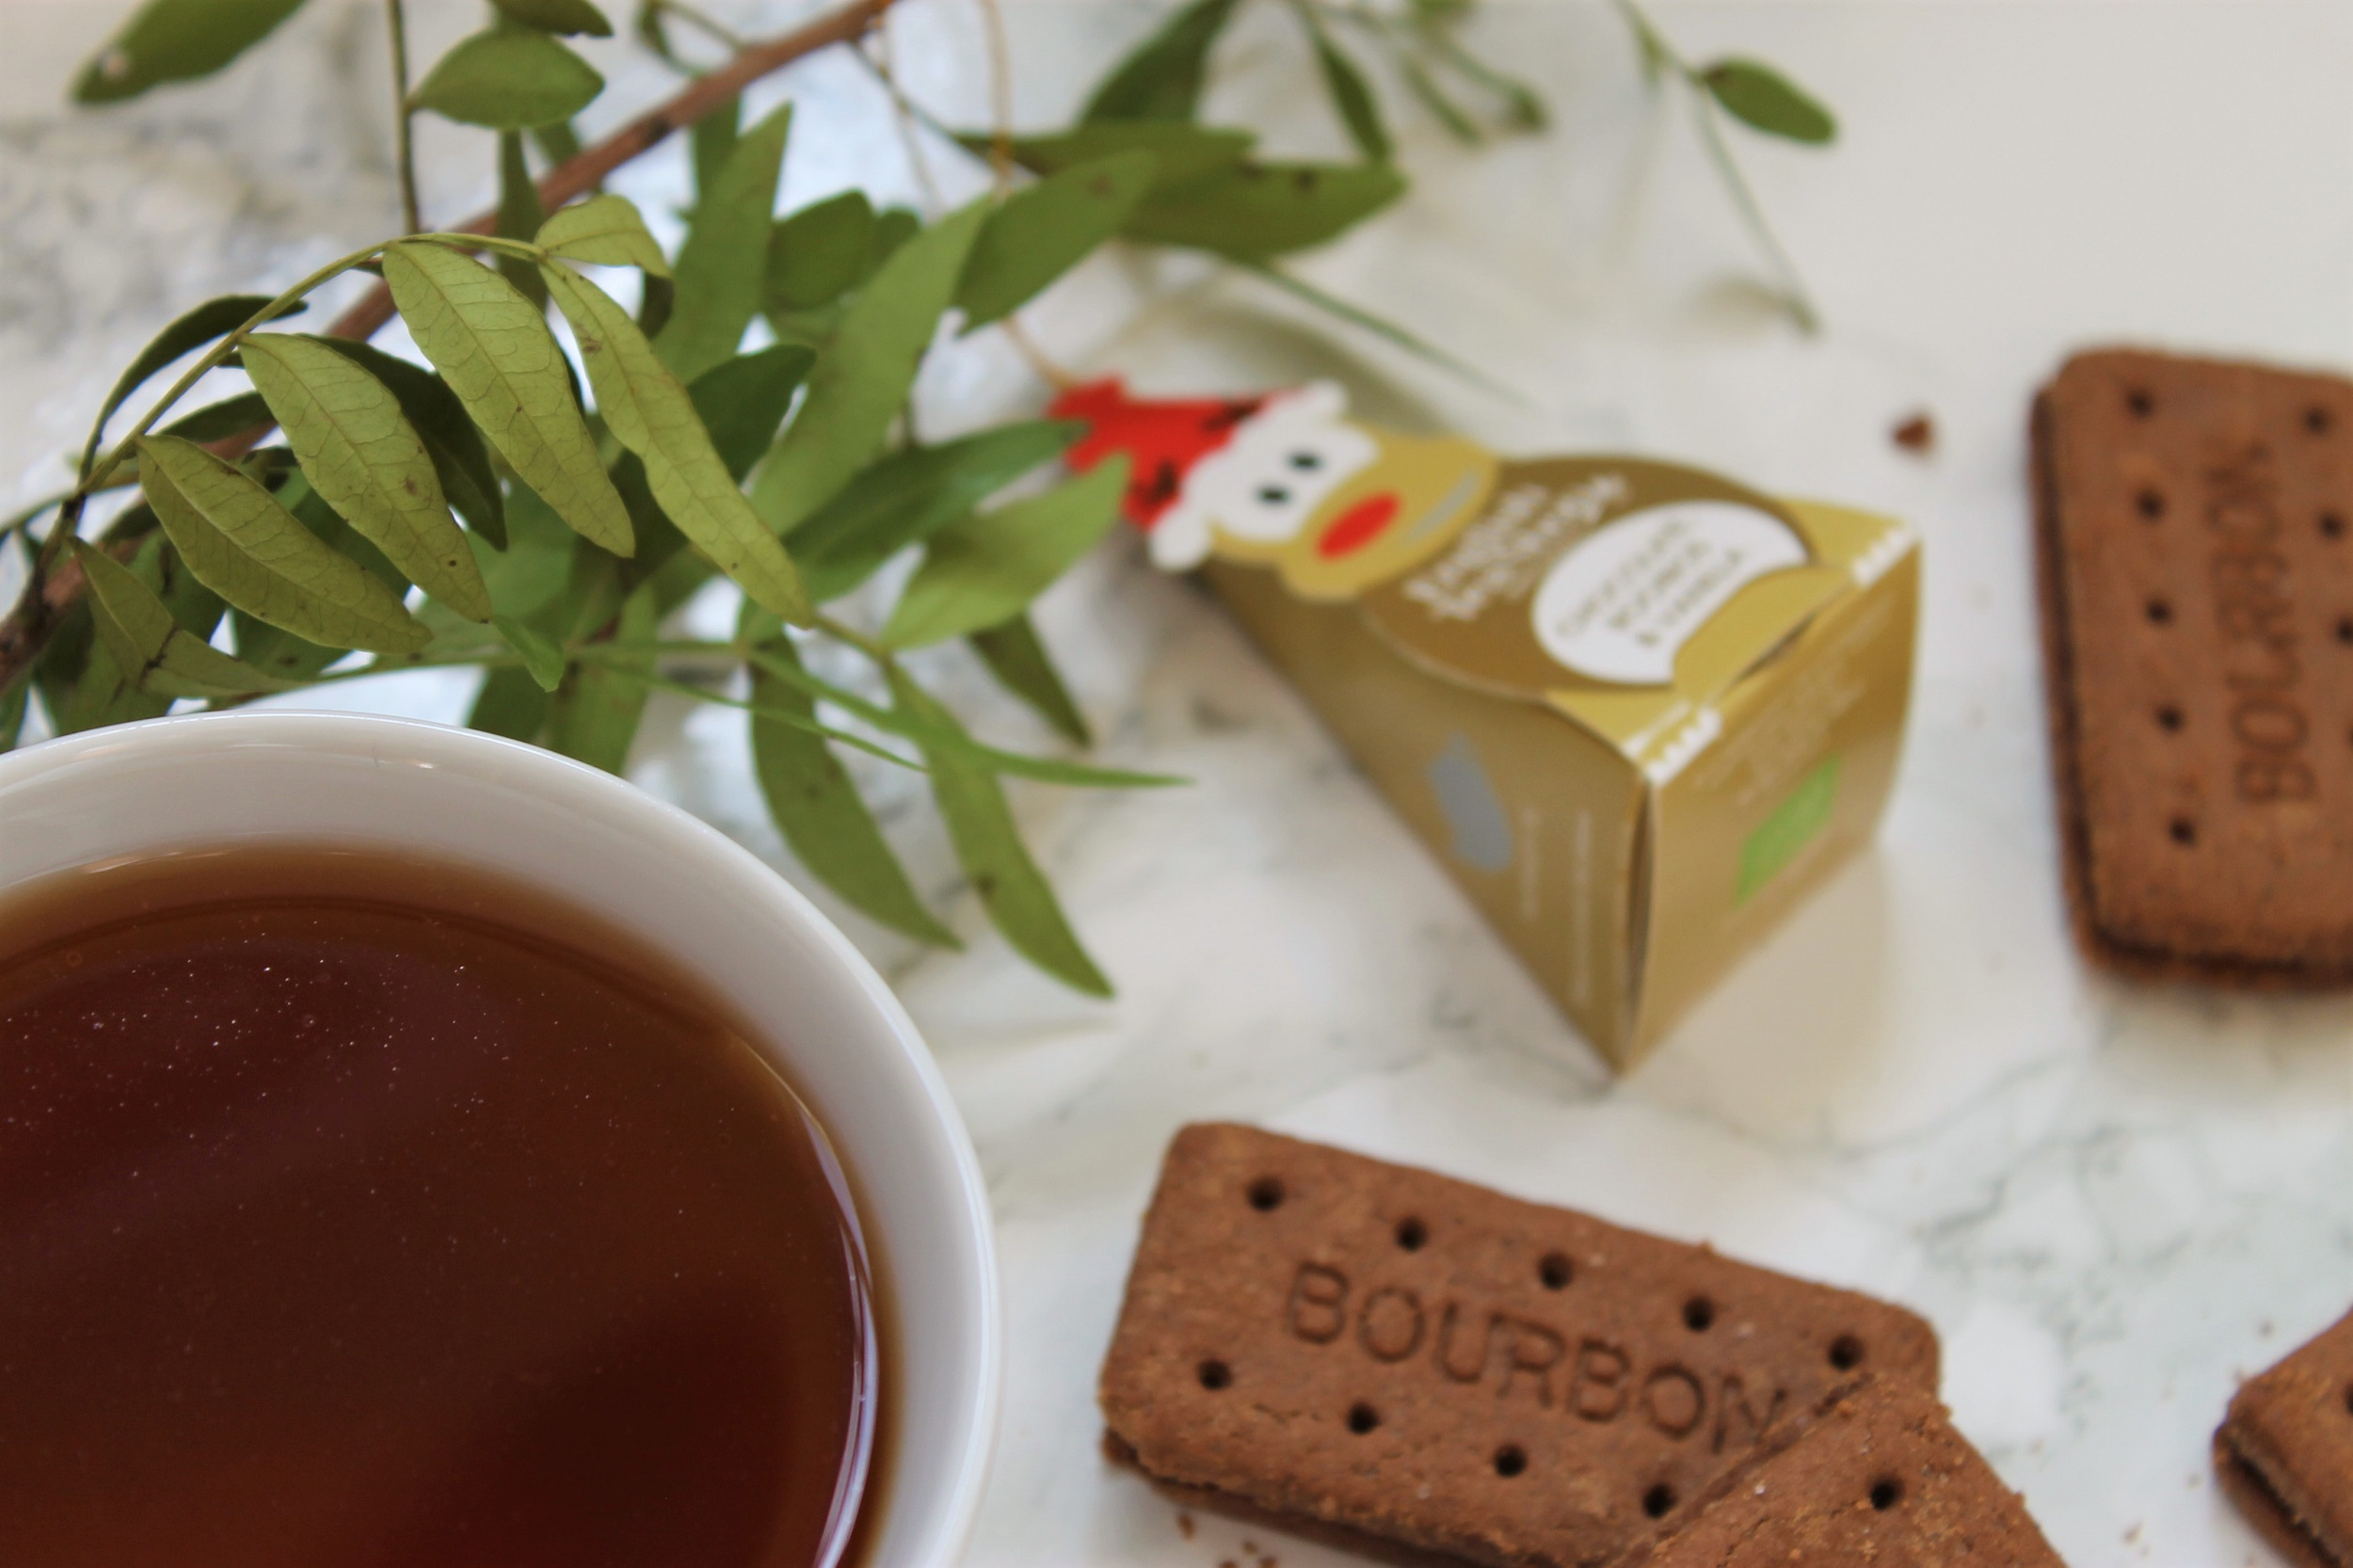 rooibos chocolate flavoured tea with bouron biscuits